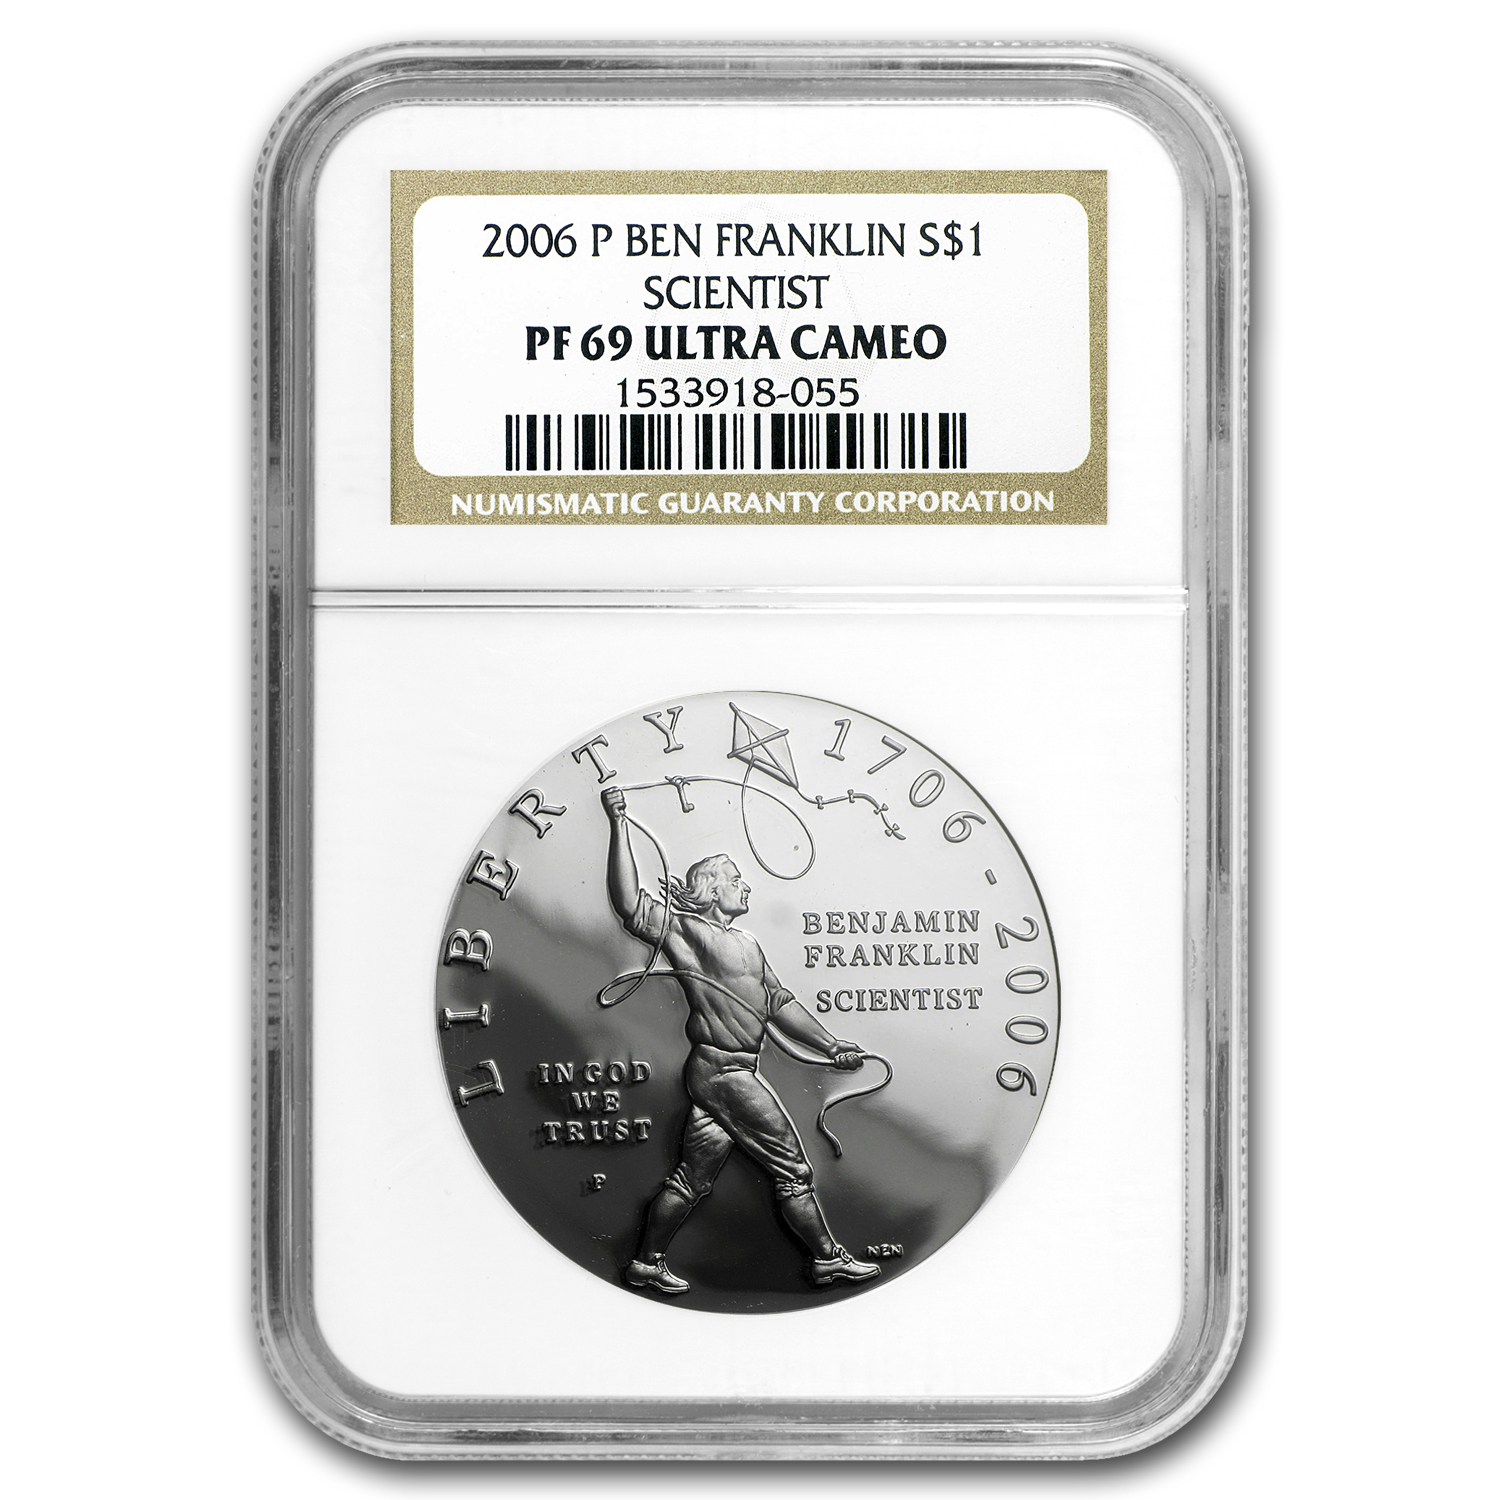 2006-P Ben Franklin Scientist $1 Silver Commem PF-69 NGC